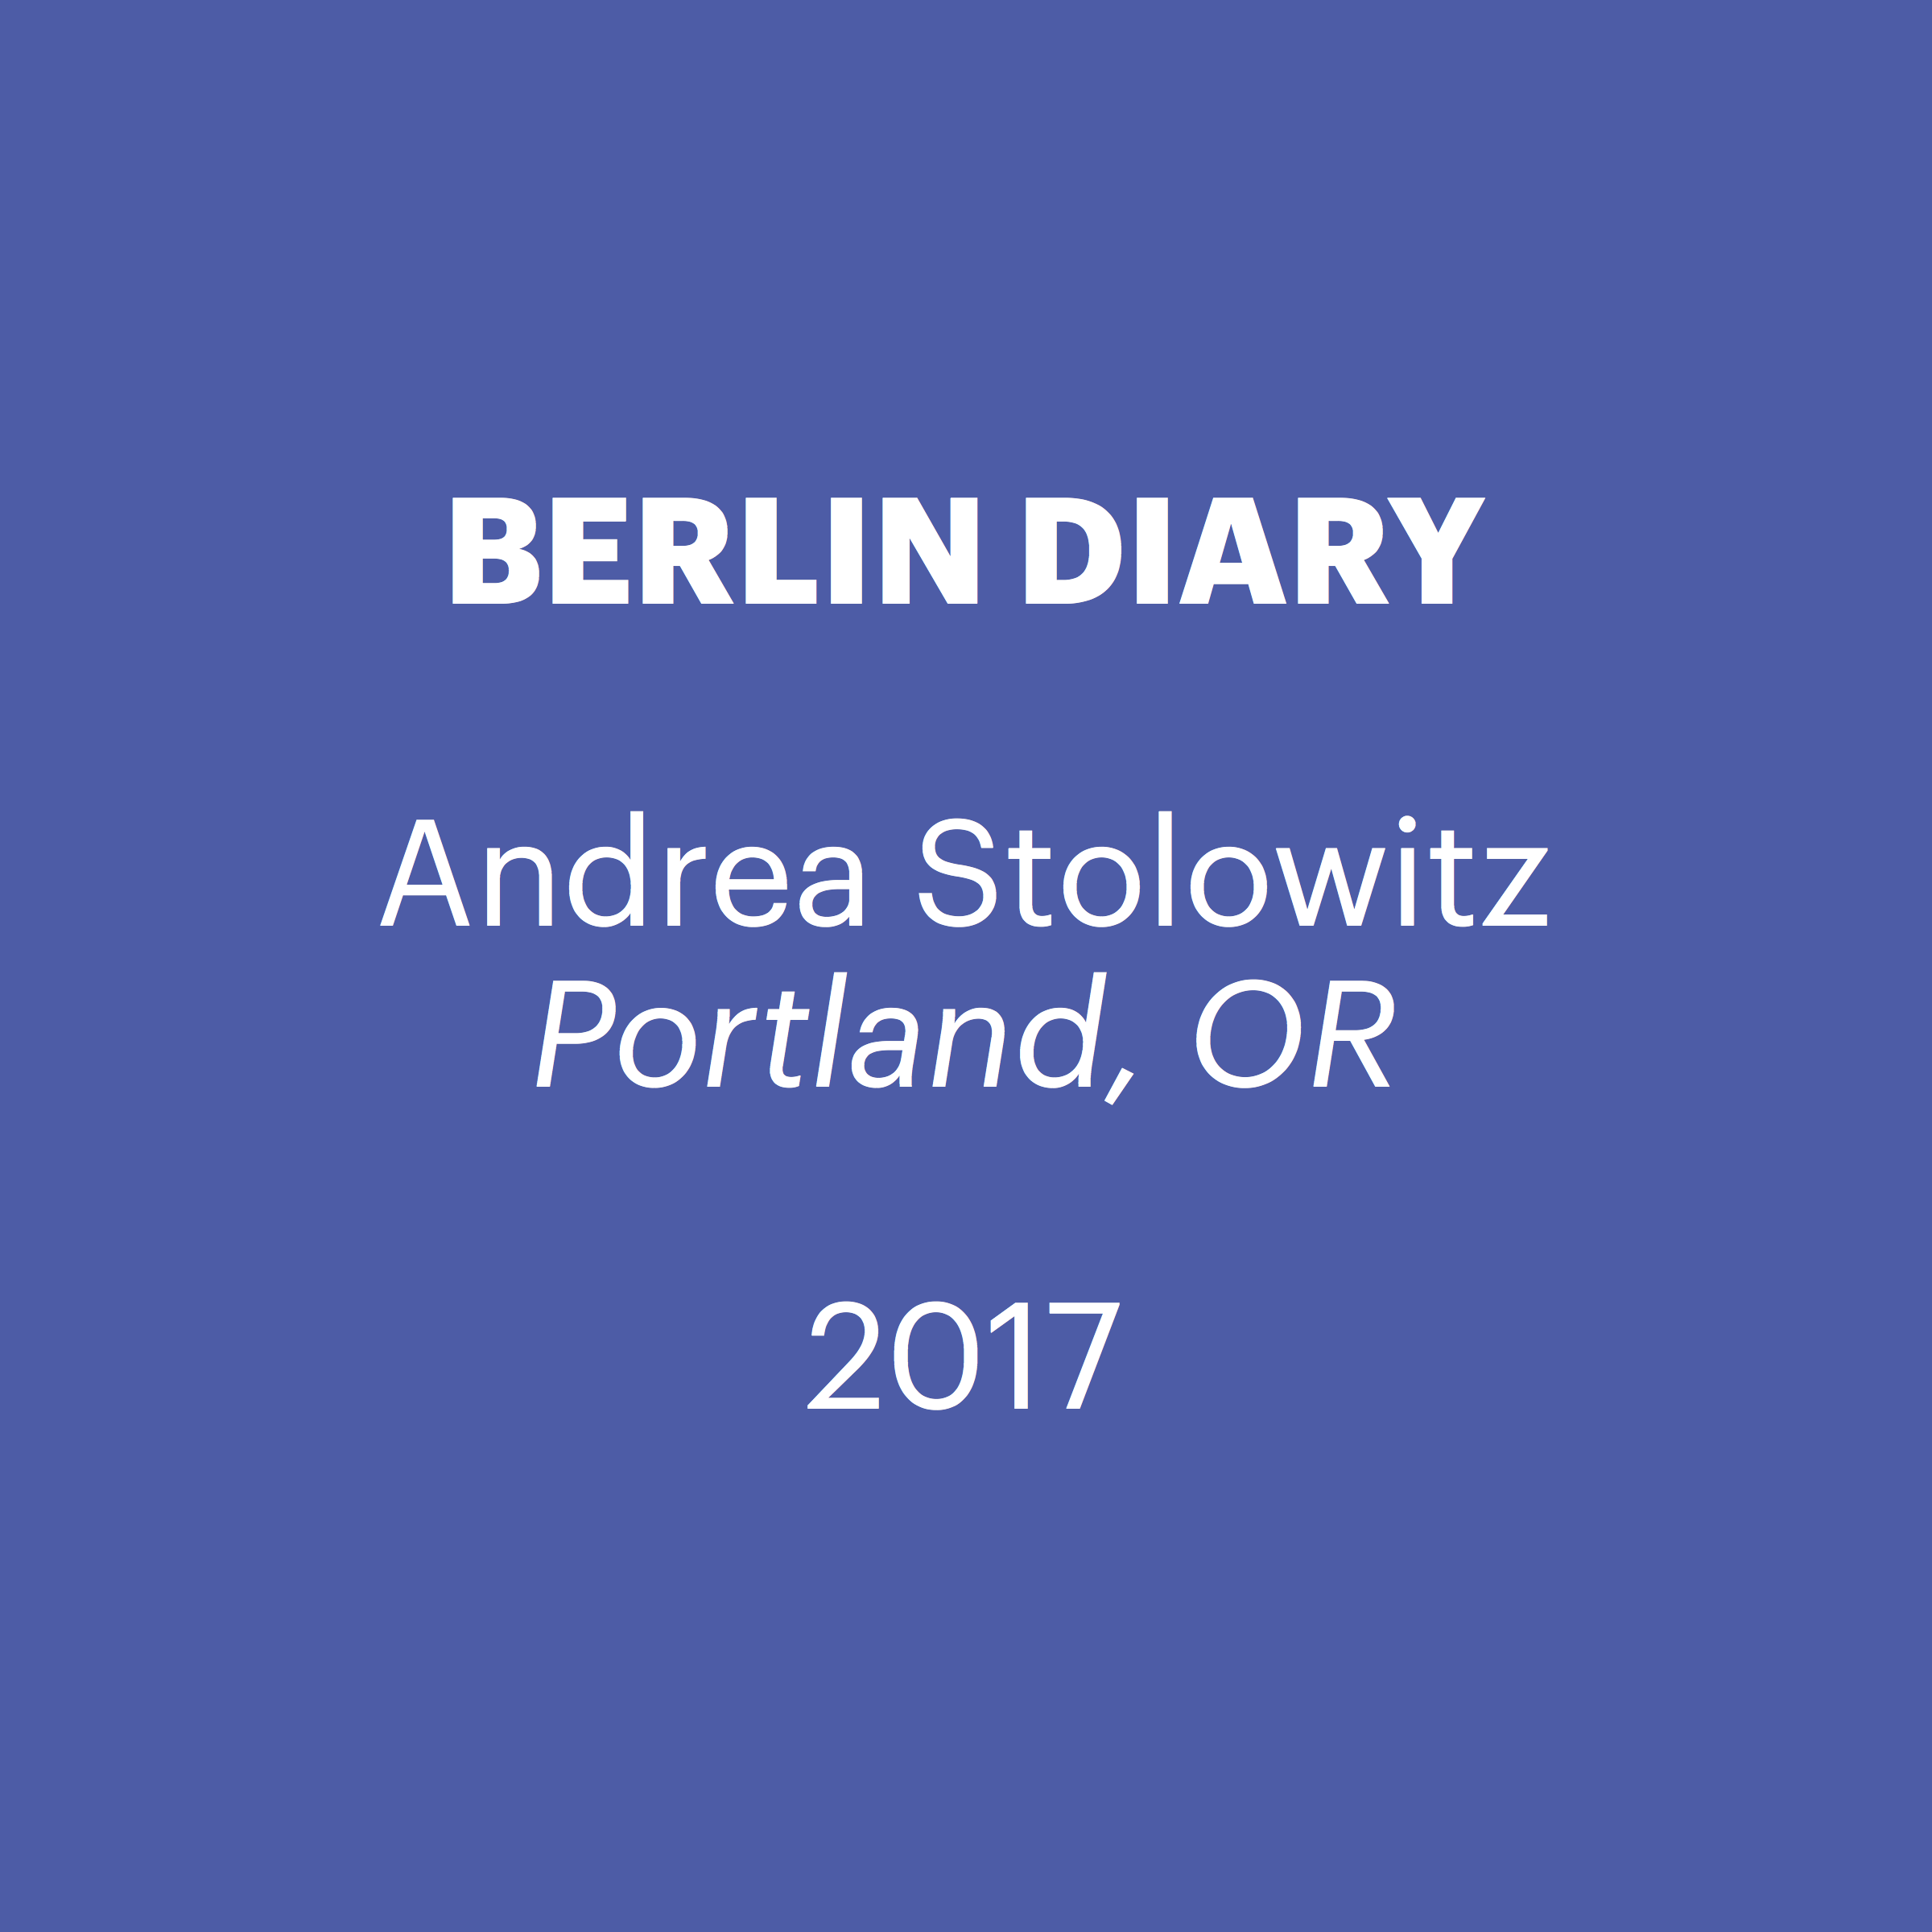 Berlin Diary Title.png